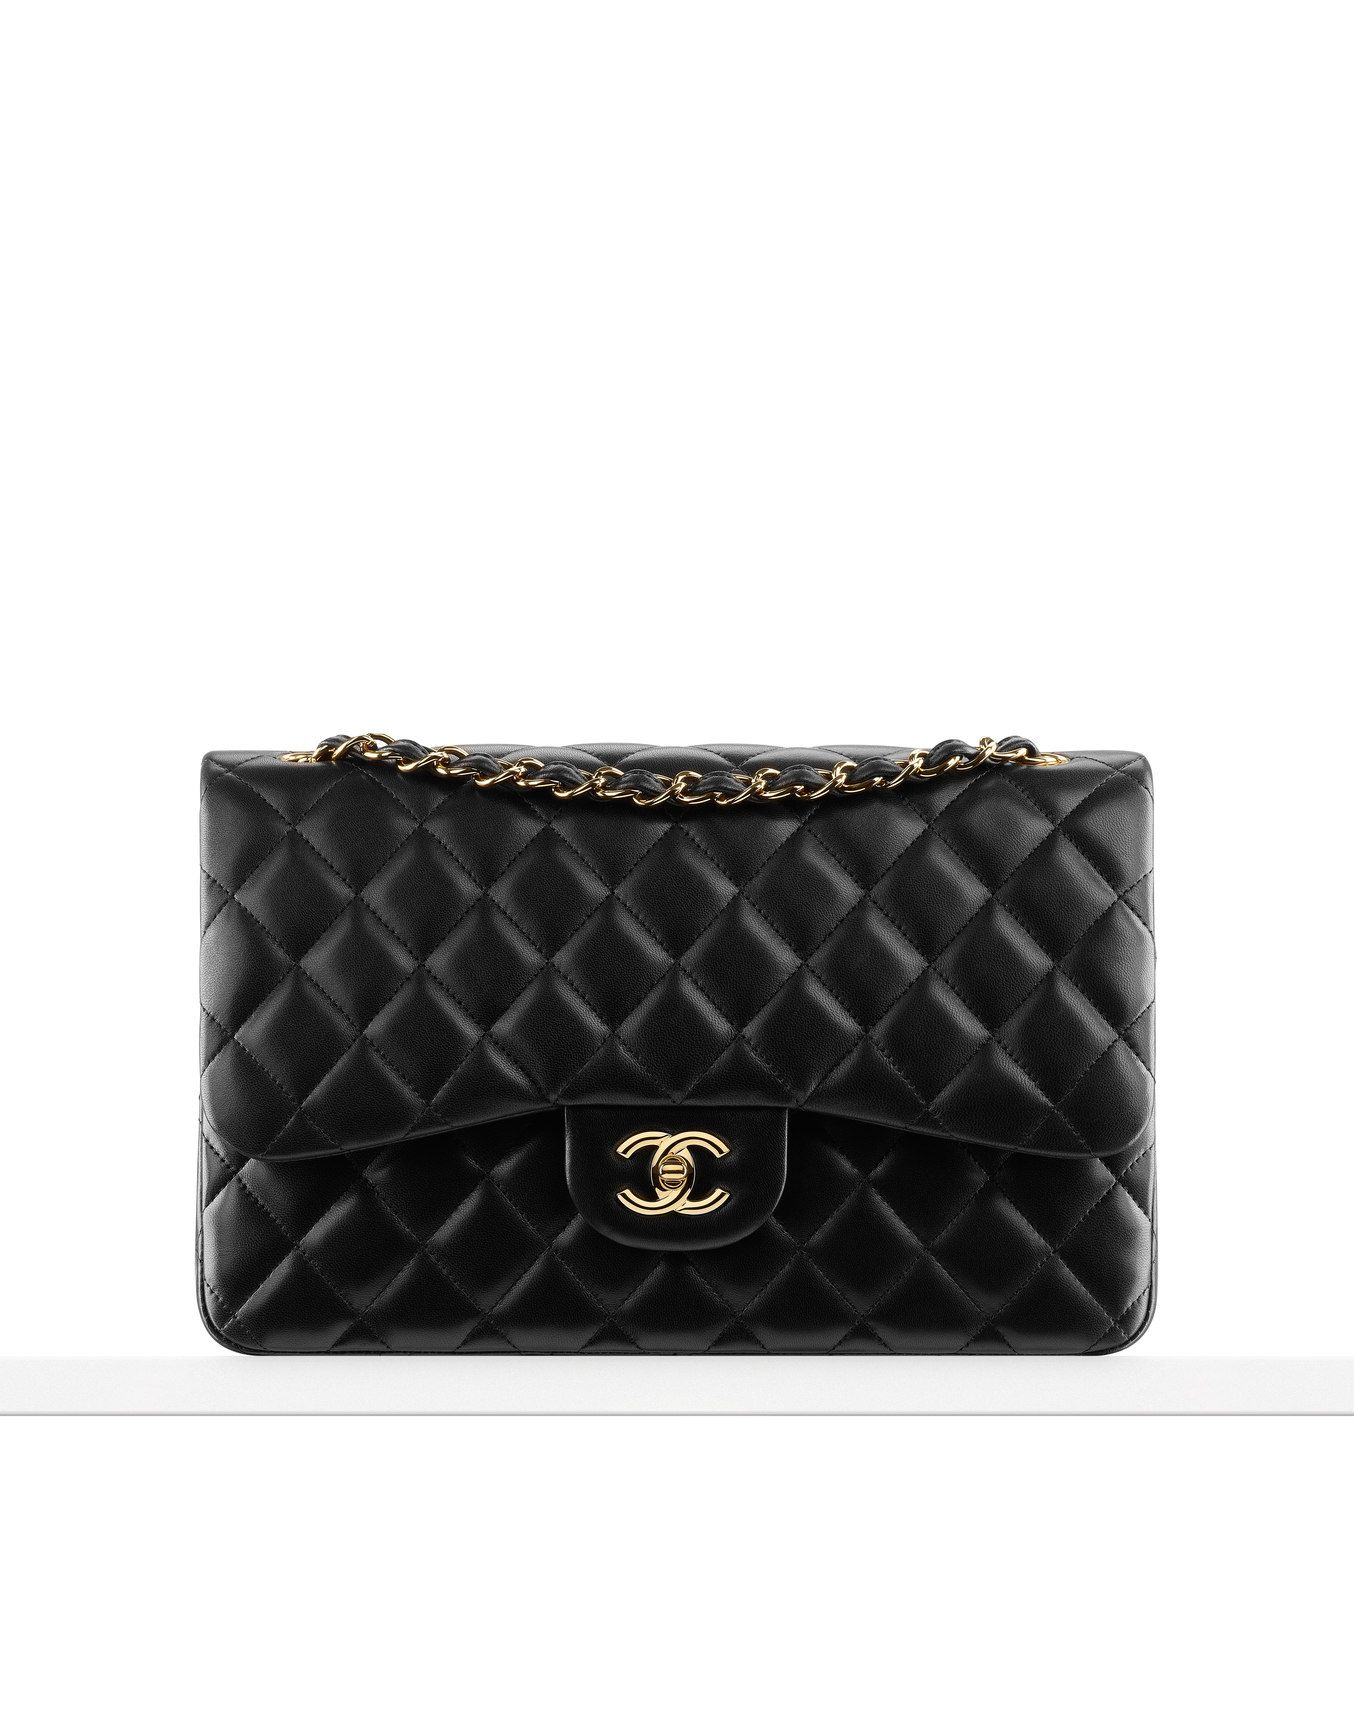 Chanel Classic Quilted Flap Bag 6 3 X 10 X 3 In Chanel Flap Bag Chanel Classic Flap Bag Classic Flap Bag